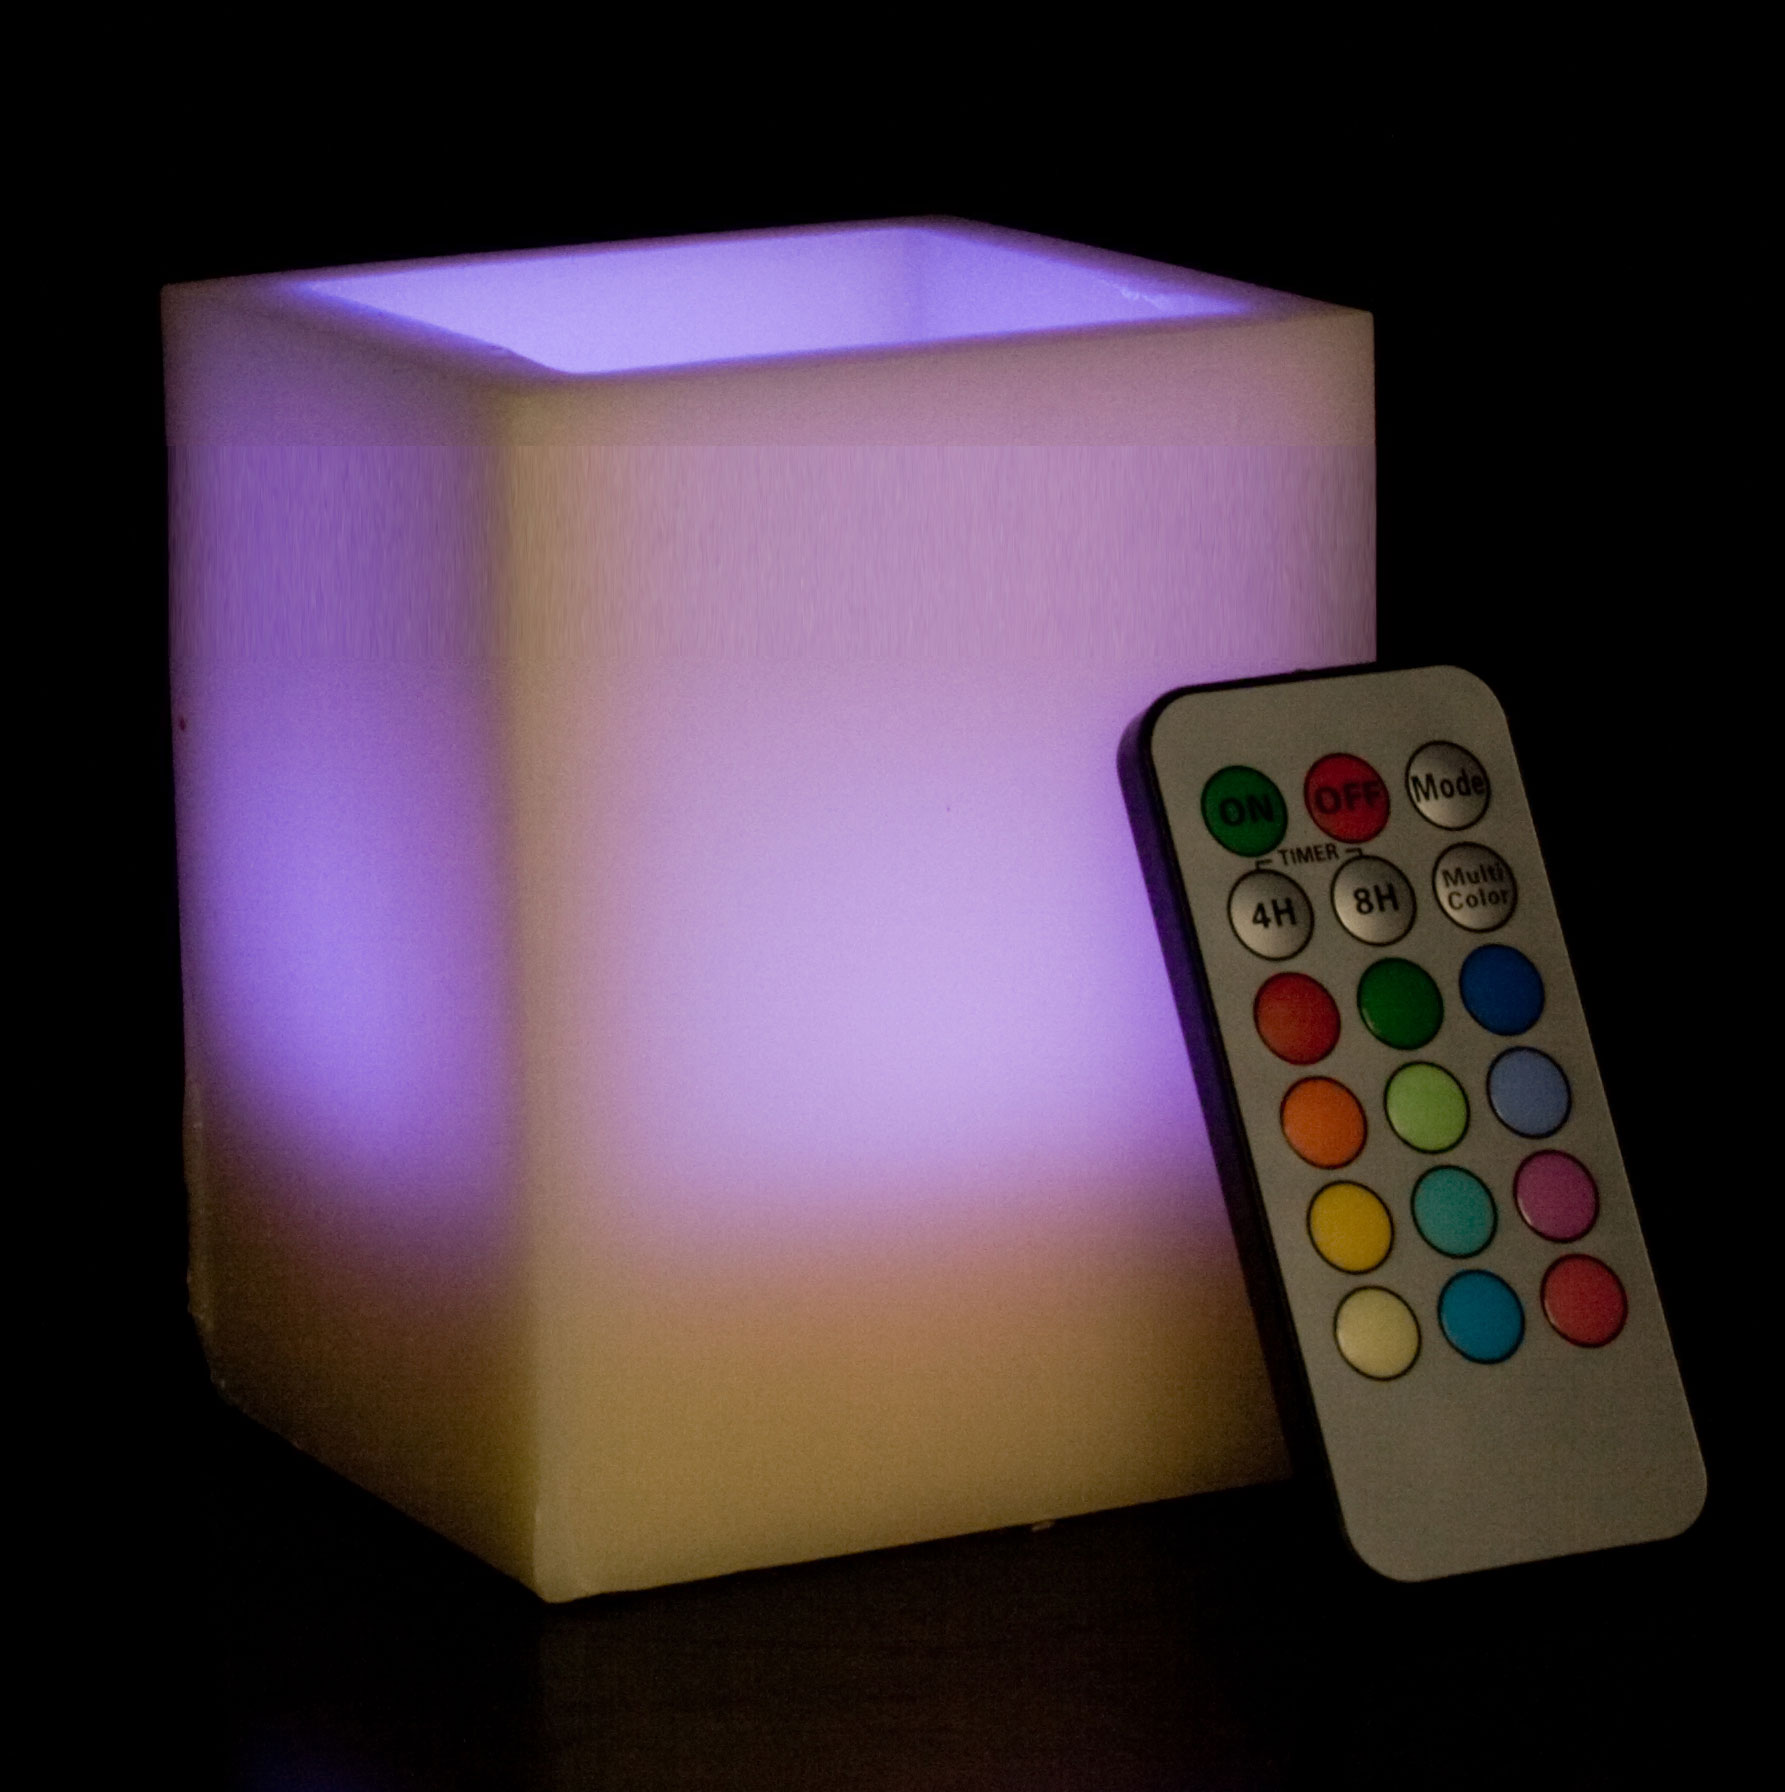 Square Smooth Edge Remote Controlled Multi Color Changing Flameless Wax Pillar Candle - 4 Inch Tall